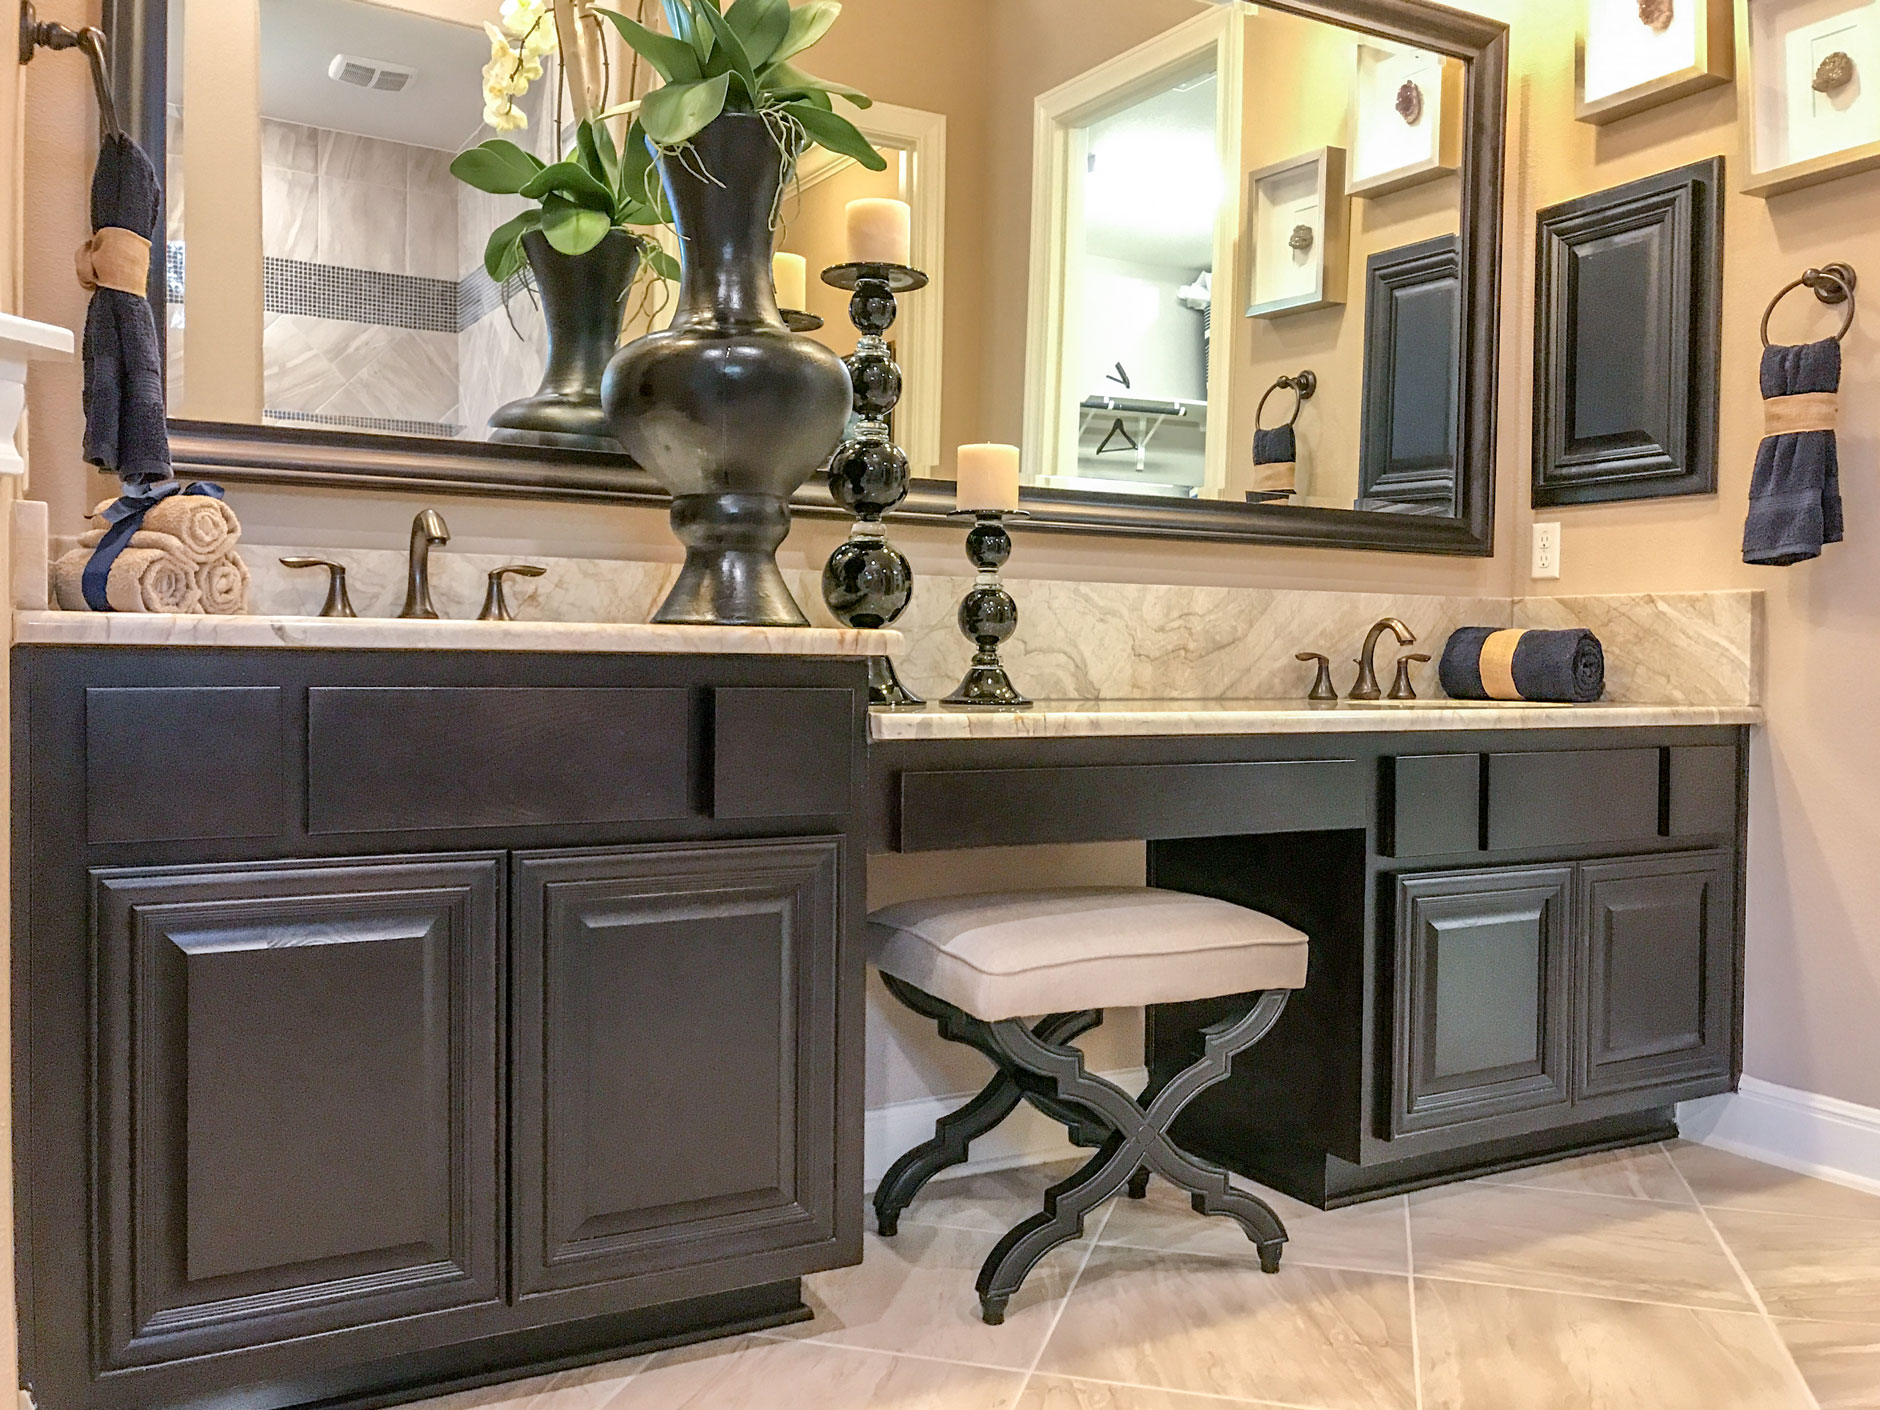 Master bath with TaylorCraft's M24, RP1 mitered doors in beech